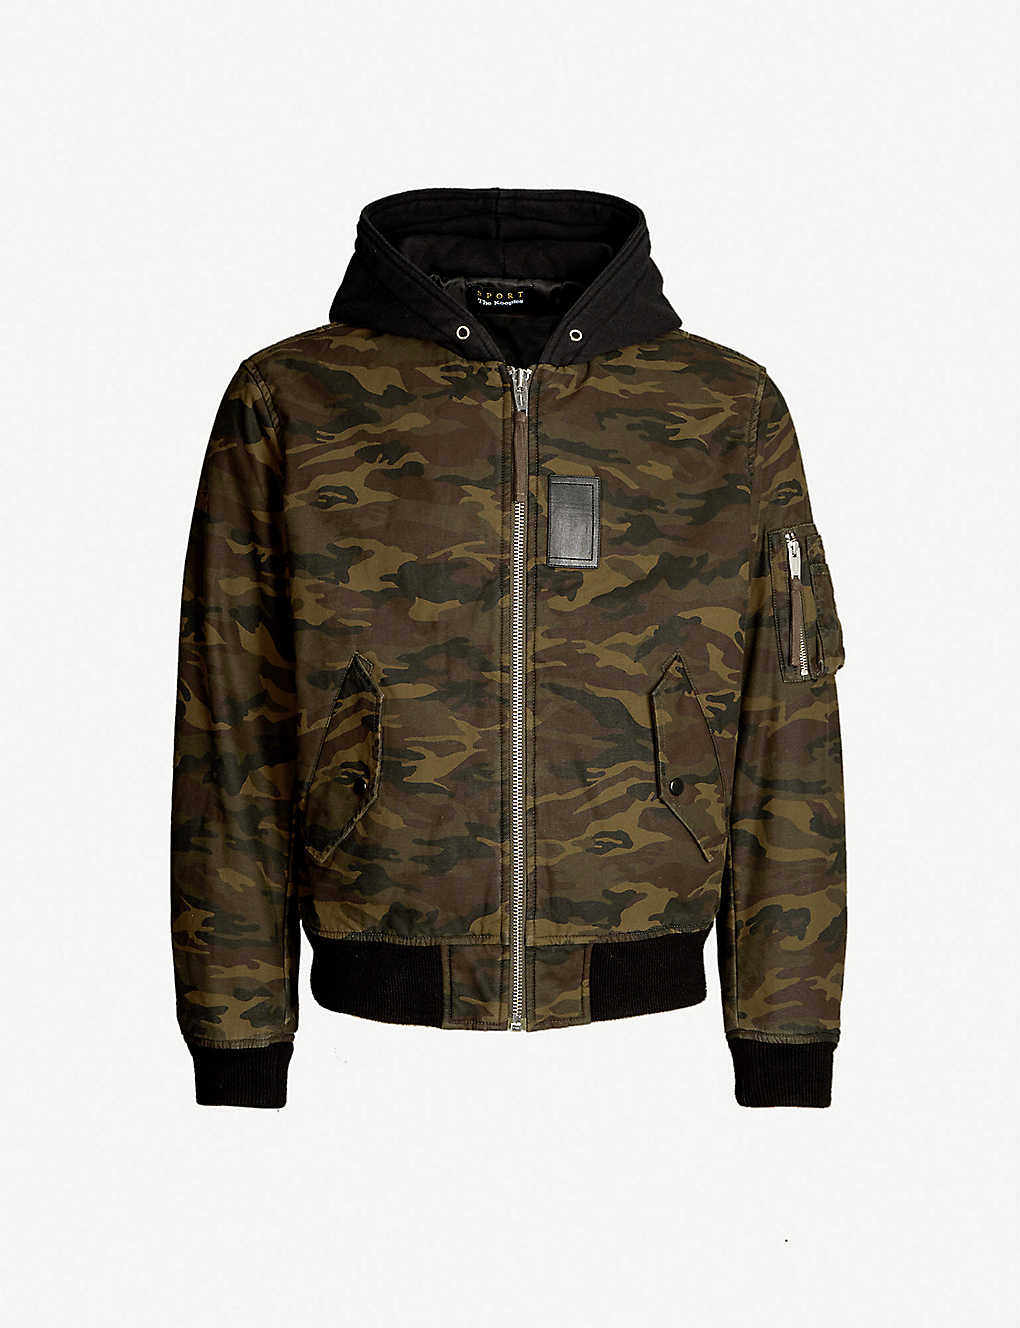 96abb0fc789 THE KOOPLES - Camouflage print hooded cotton bomber jacket ...